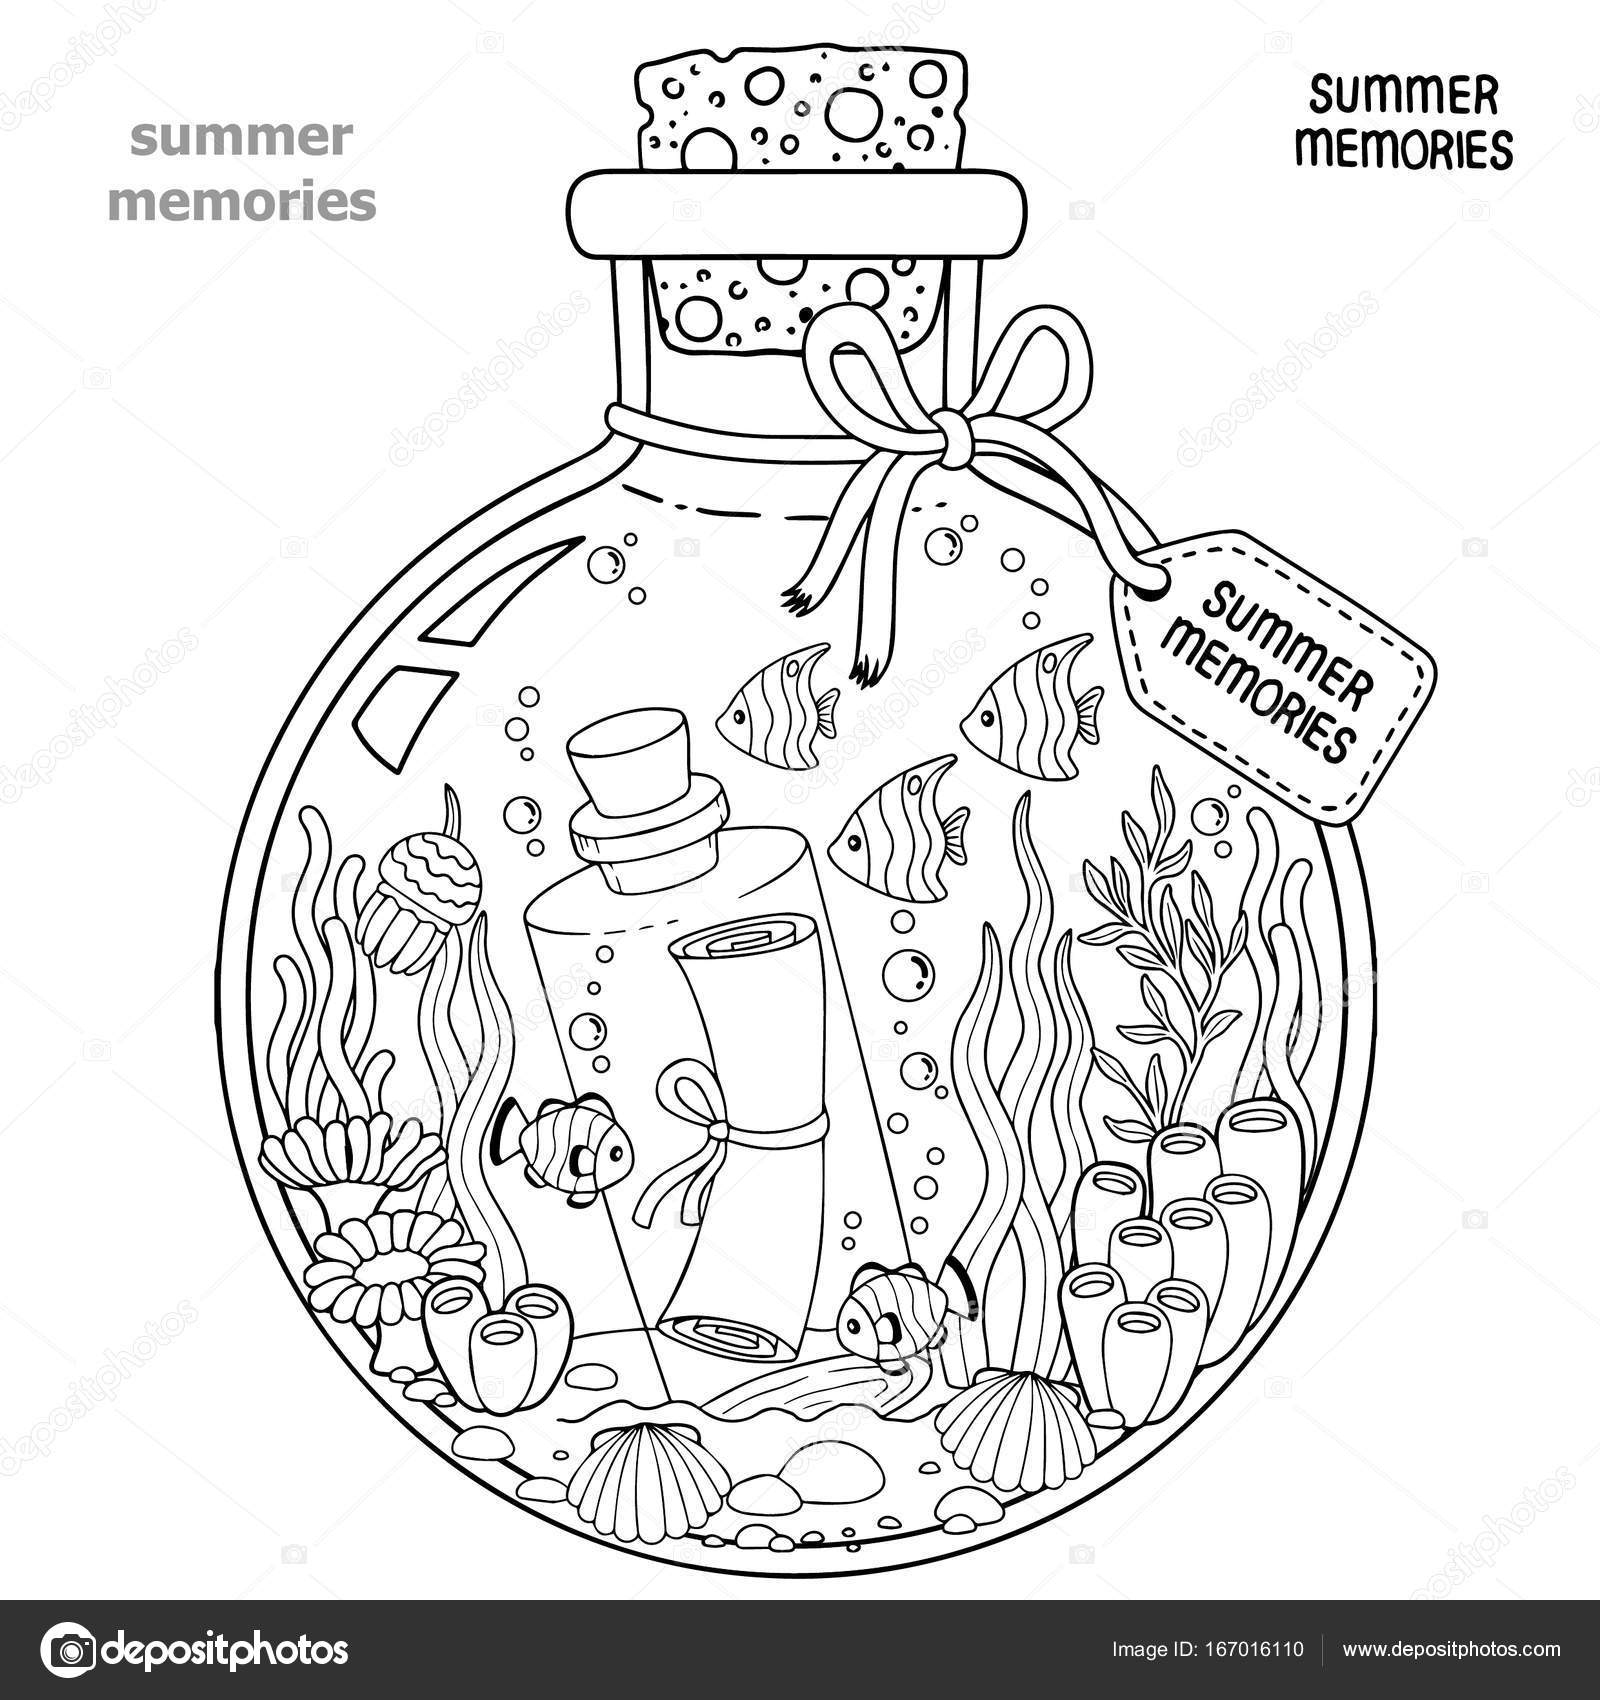 Coloring Book For Adults A Glass Vessel With Memories Of Summer Bottle Sea Creatures